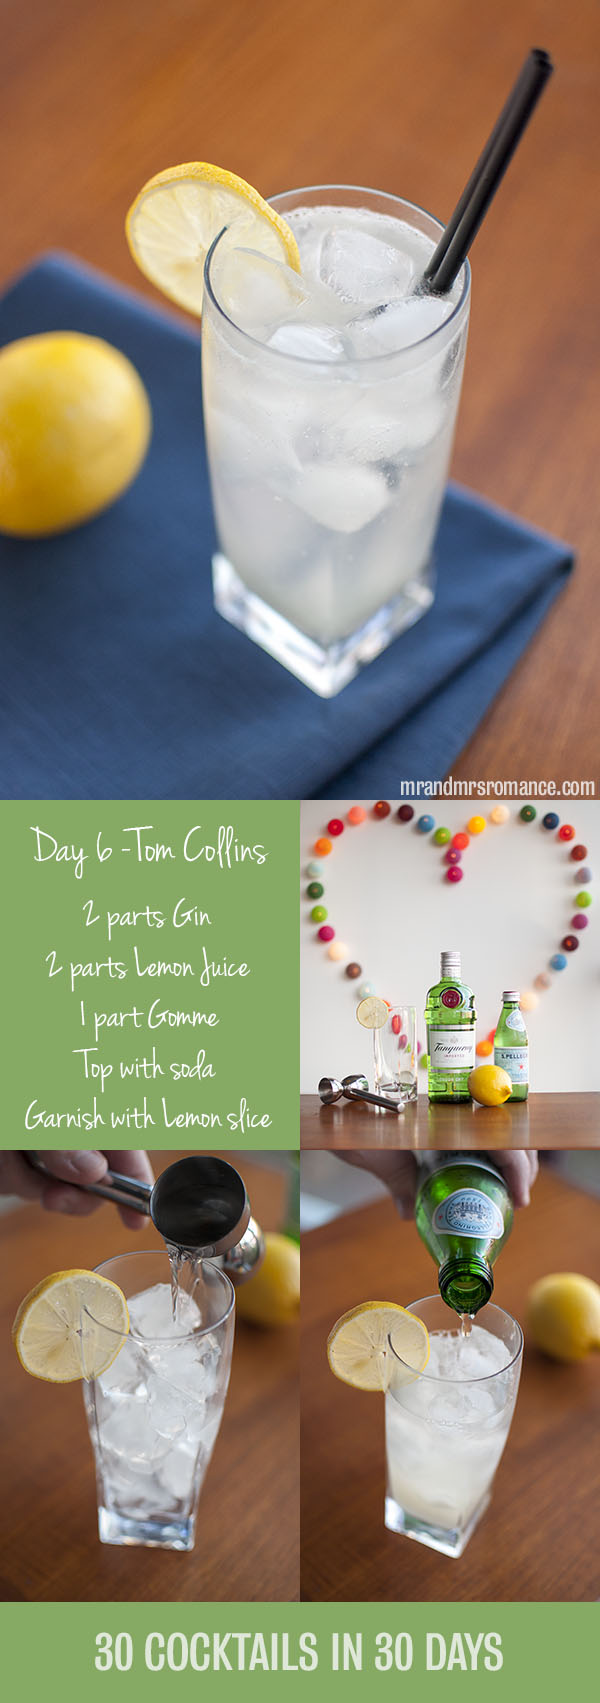 Mr and Mrs Romance - Day 6 - Tom Collins Cocktail Recipe